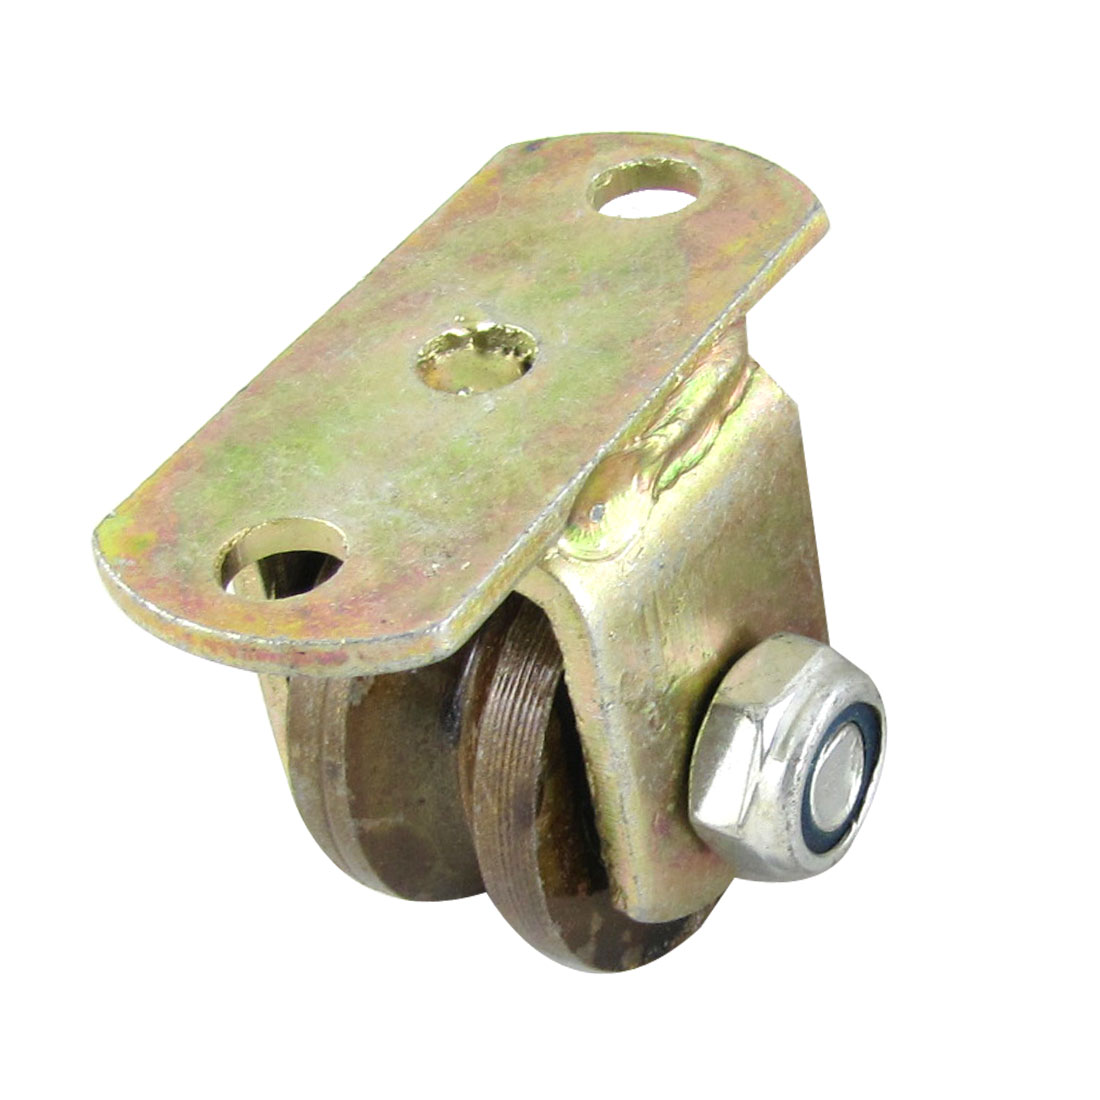 "1.5"" Diameter Wheel Metal V Groove Rigid Caster for Industrial Carts"